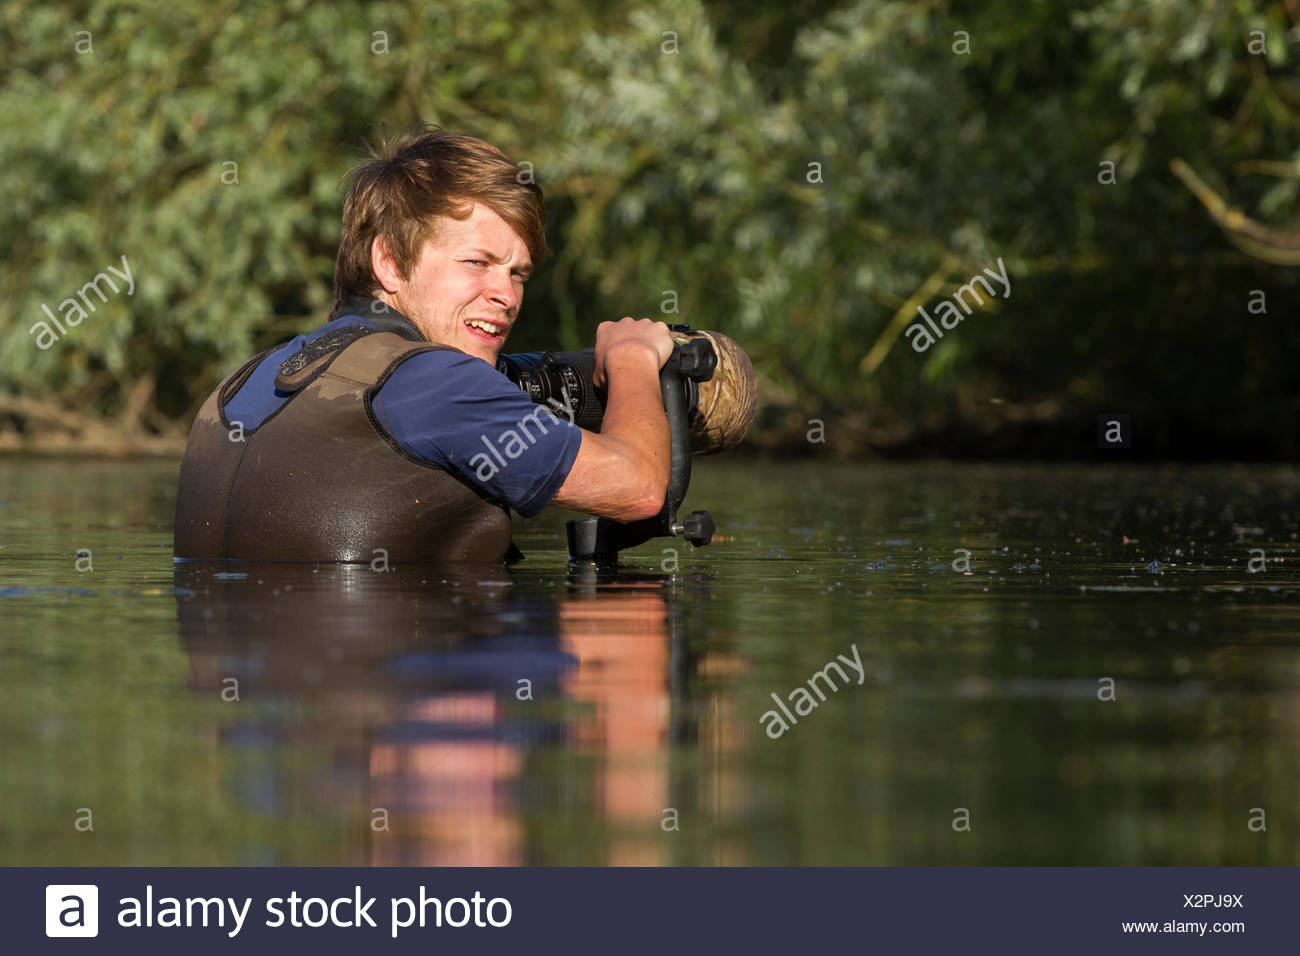 Wildlife photographer, Bertie Gregory, photographing great crested grebes while submerged in a river. Stock Photo